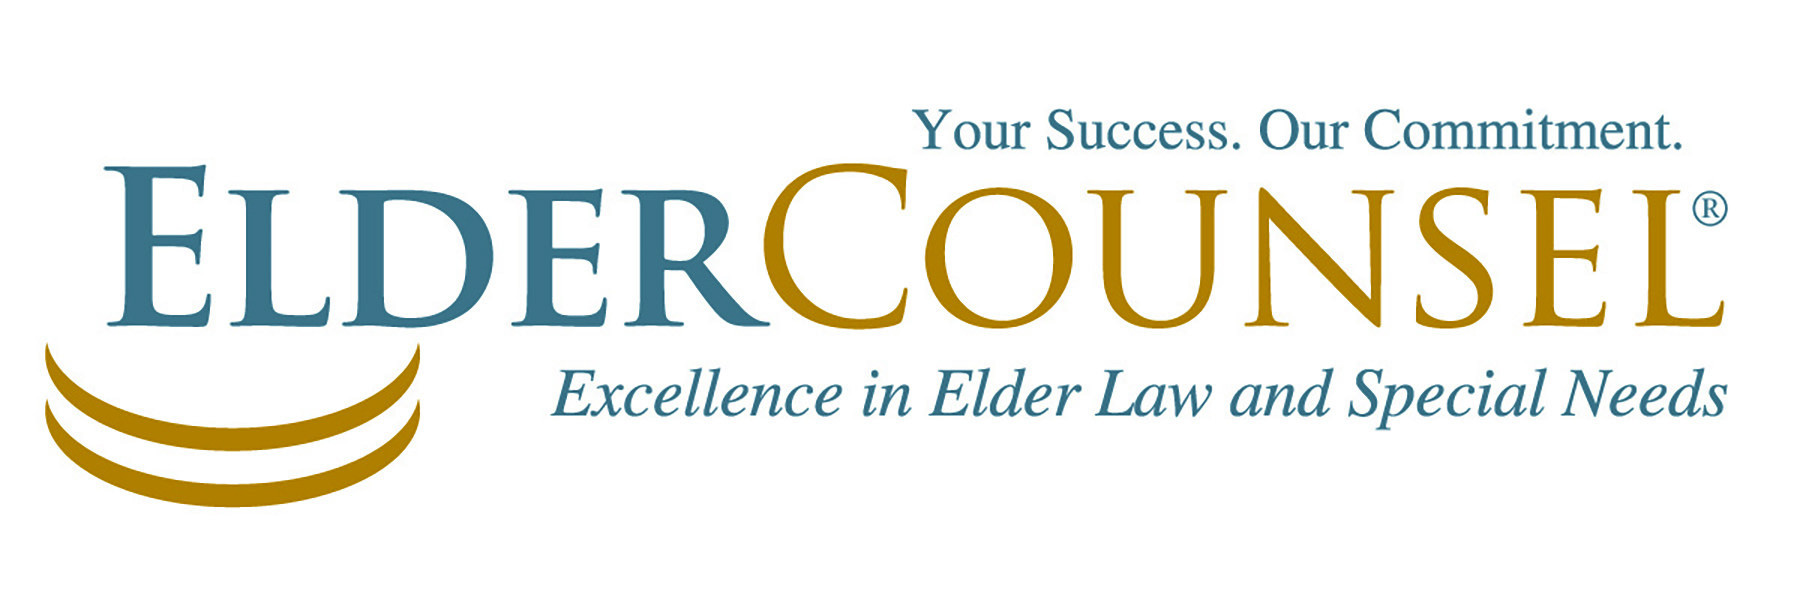 ElderCounsel, LLC